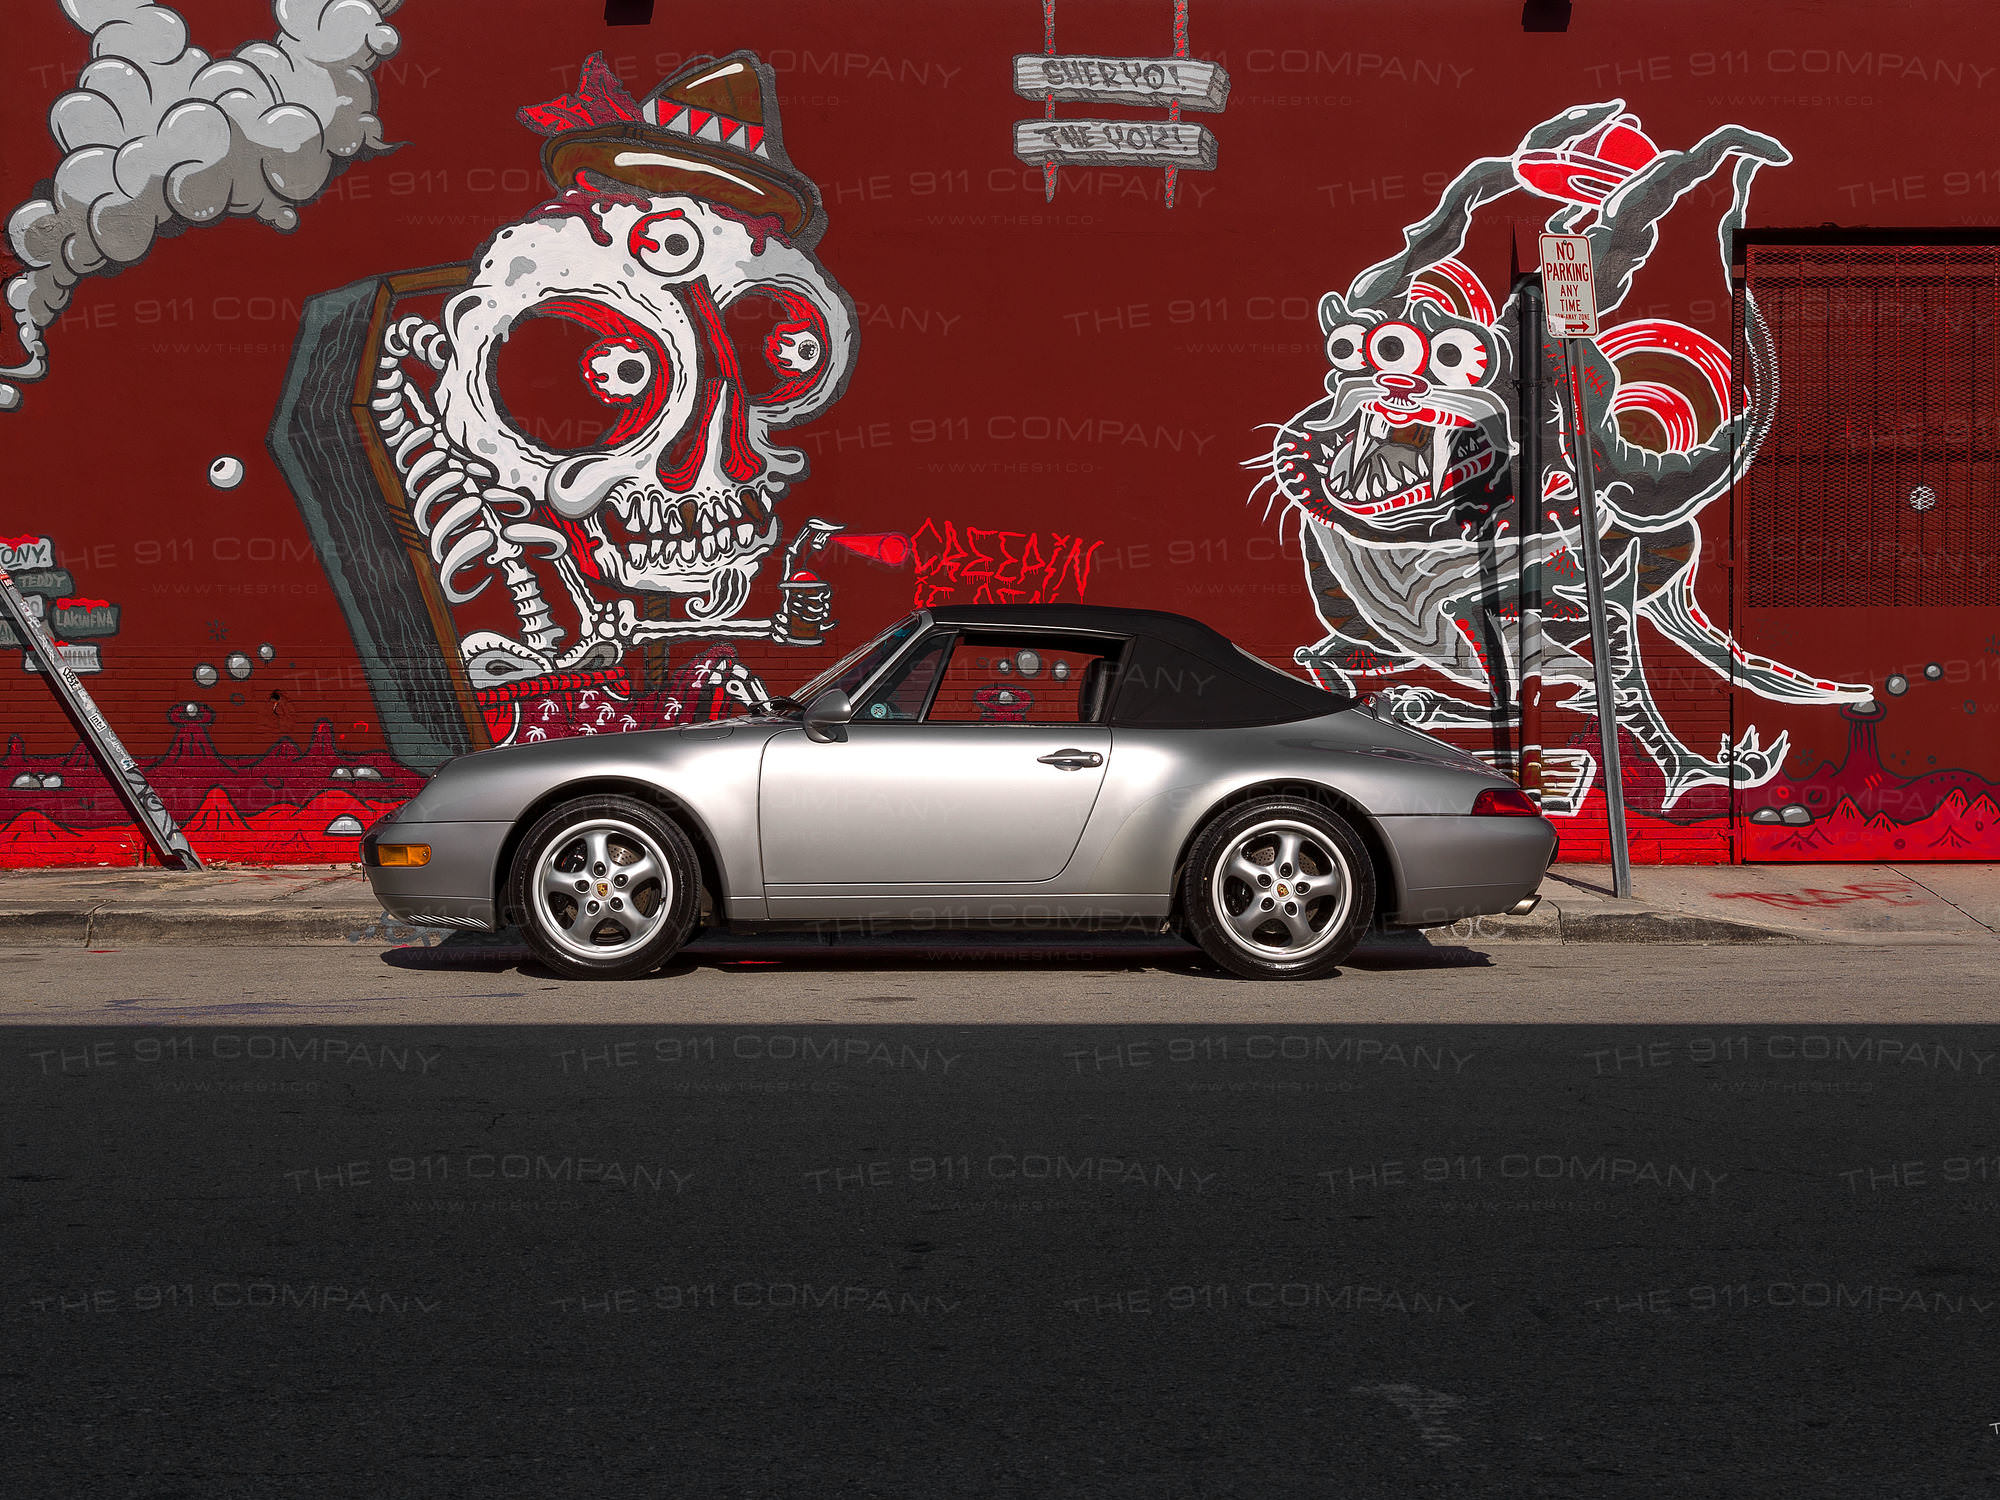 With the top up or down, this Porsche exemplifies uncomplicated fun.